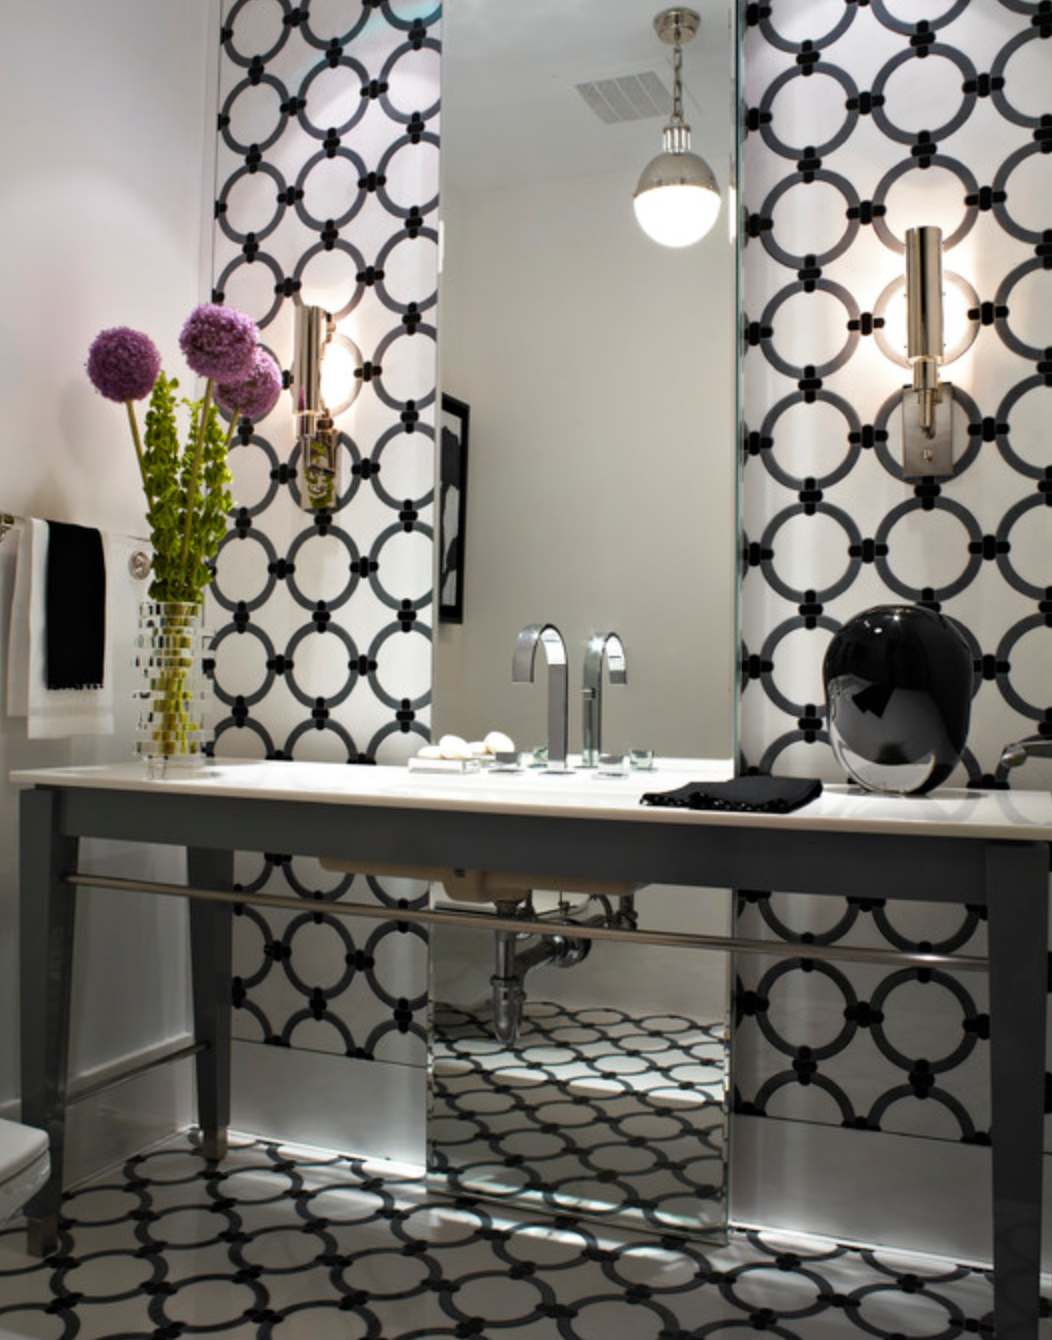 Best The Chic Black And White Wallpaper And Art Deco Lighting Make This A Very Cool Powder Bath Art 400 x 300